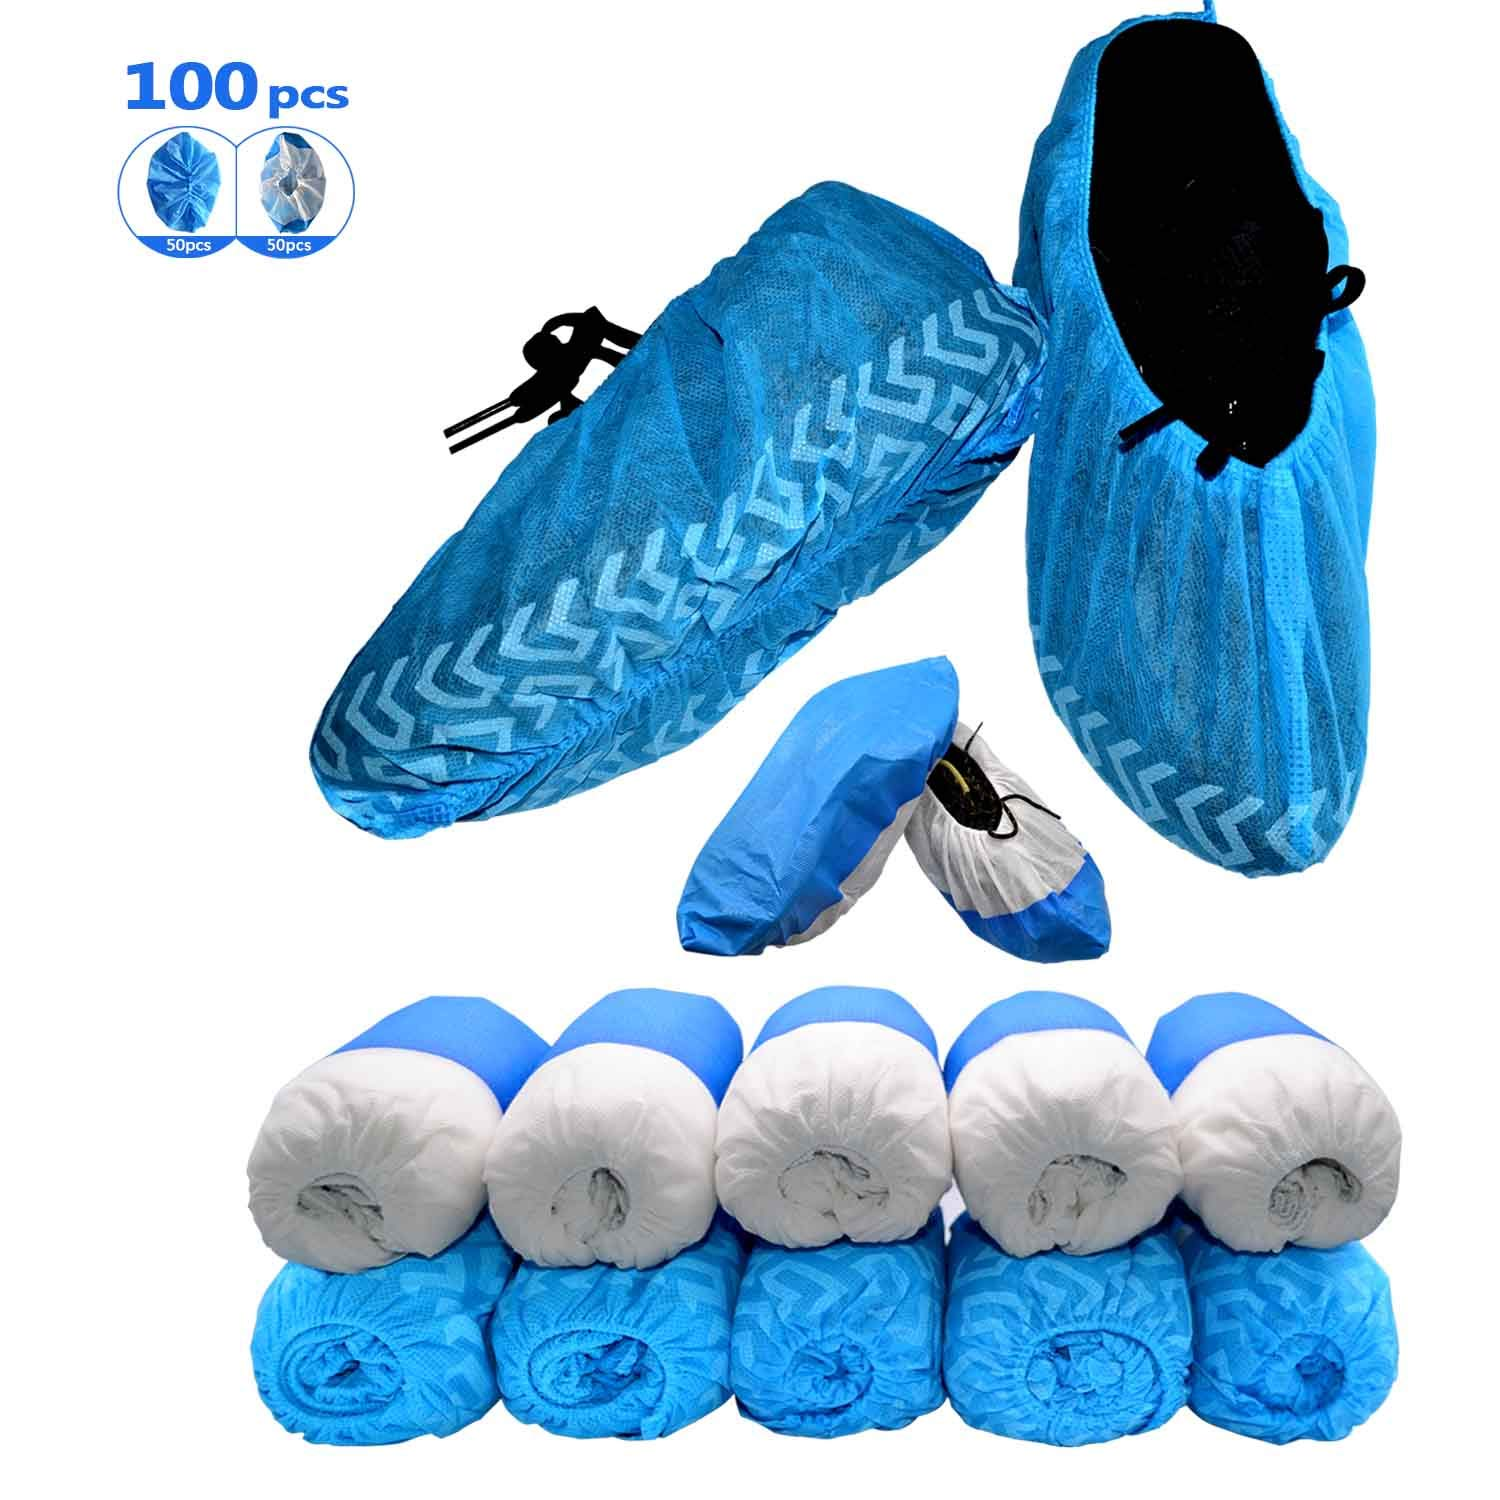 Premium Shoe Covers Disposable &Boot Cover Waterproof, 100 Pack(50Pack Thick Material Dustproof, Non-Toxic, Durable +50Pack Water Resistant)Shoe Covers for Indoors And Outdoor| One Size Fits Most